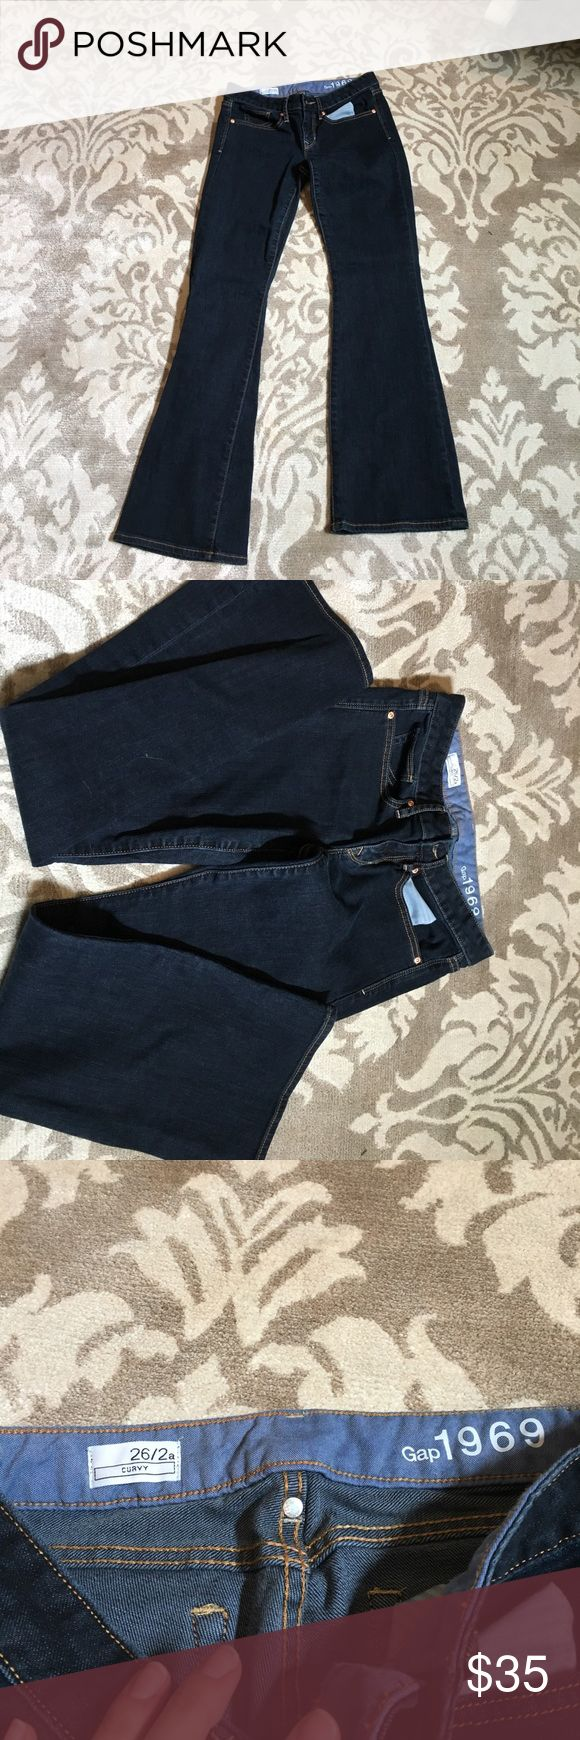 Gap boot cut curvy jeans size 26/2A Gap boot cut curvy jeans size 26/2A.  Like new condition worn and washed once, dark wash GAP Jeans Boot Cut